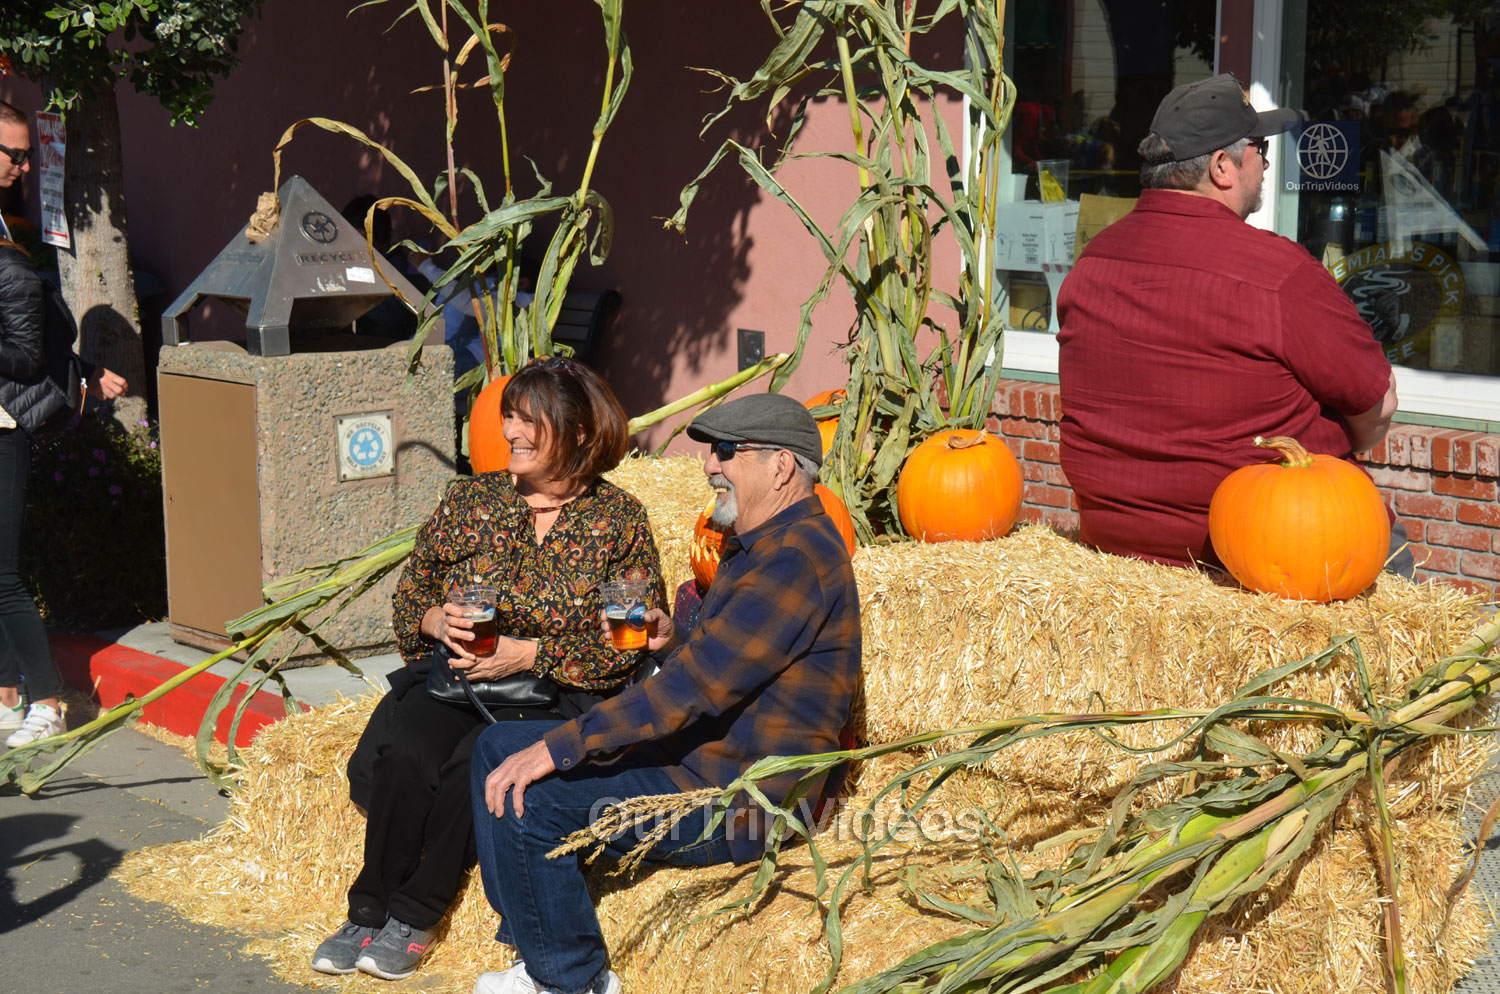 Art and Pumpkin Festival(Parade), Half Moon Bay, CA, USA - Picture 12 of 25